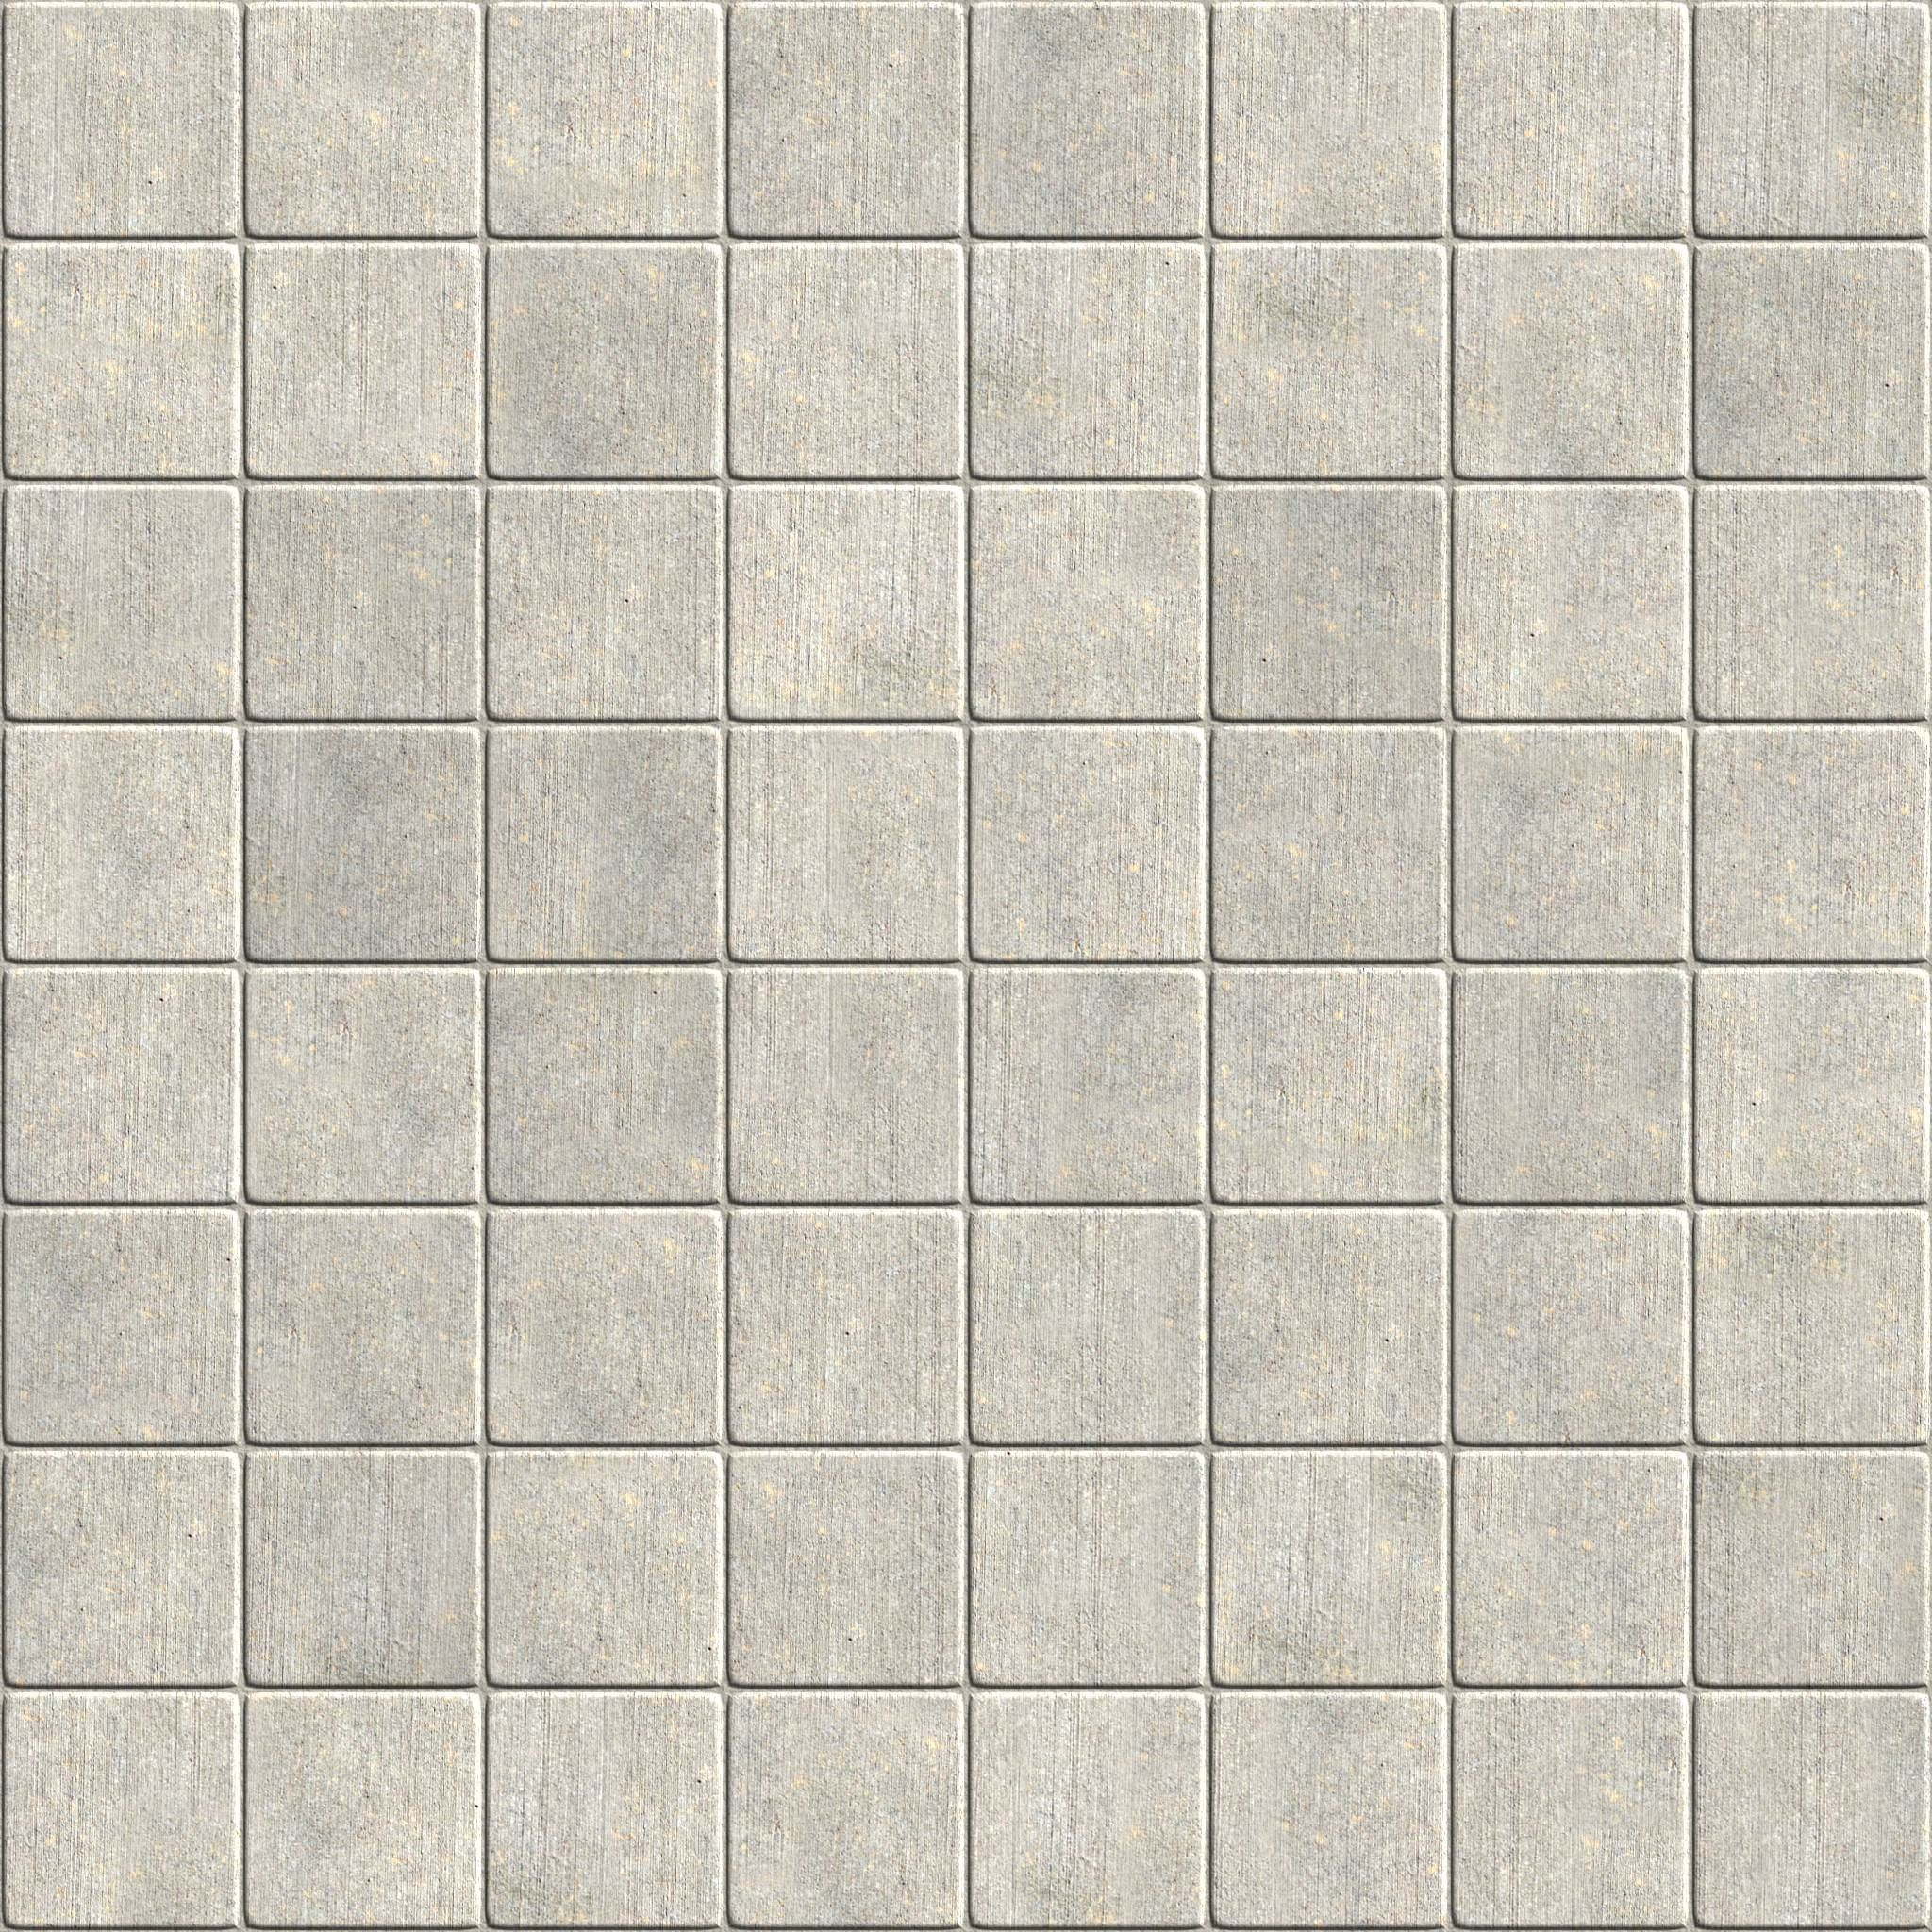 school tile floor texture. 26106d1348103059-camoflage-seamless-texture-maps-free-use-concrete_tiles_2048.jpg (2048×2048) School Tile Floor Texture L